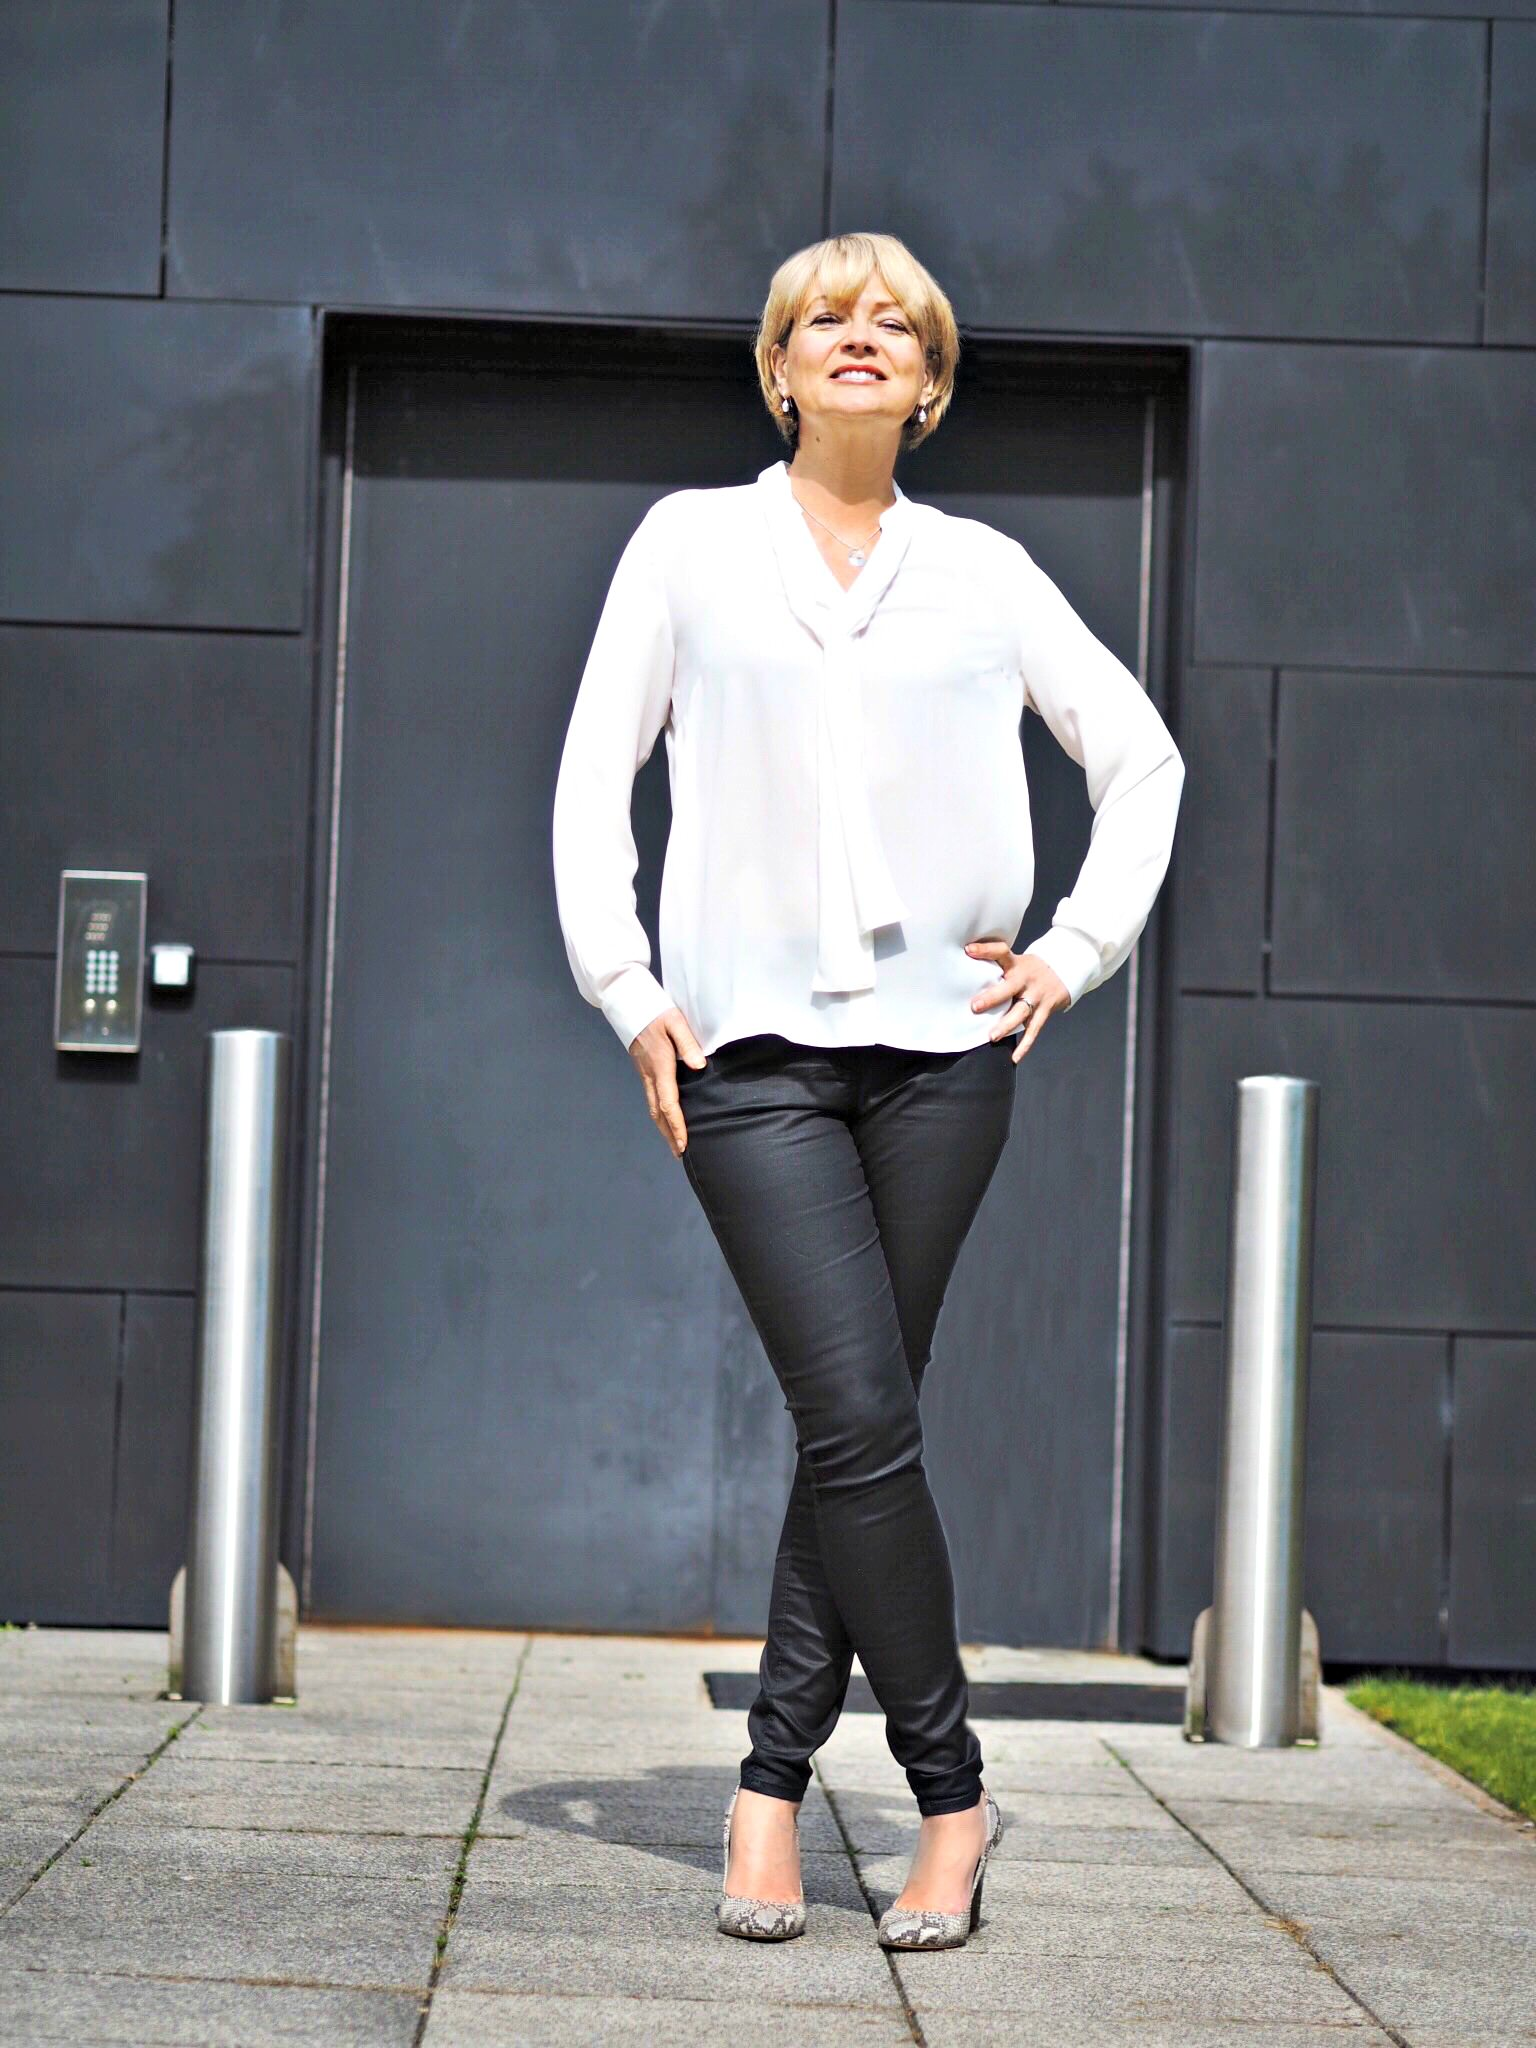 Midlifechic - wearing Marks and Spencer white shirt - The Over 40 Collective White top Challenge